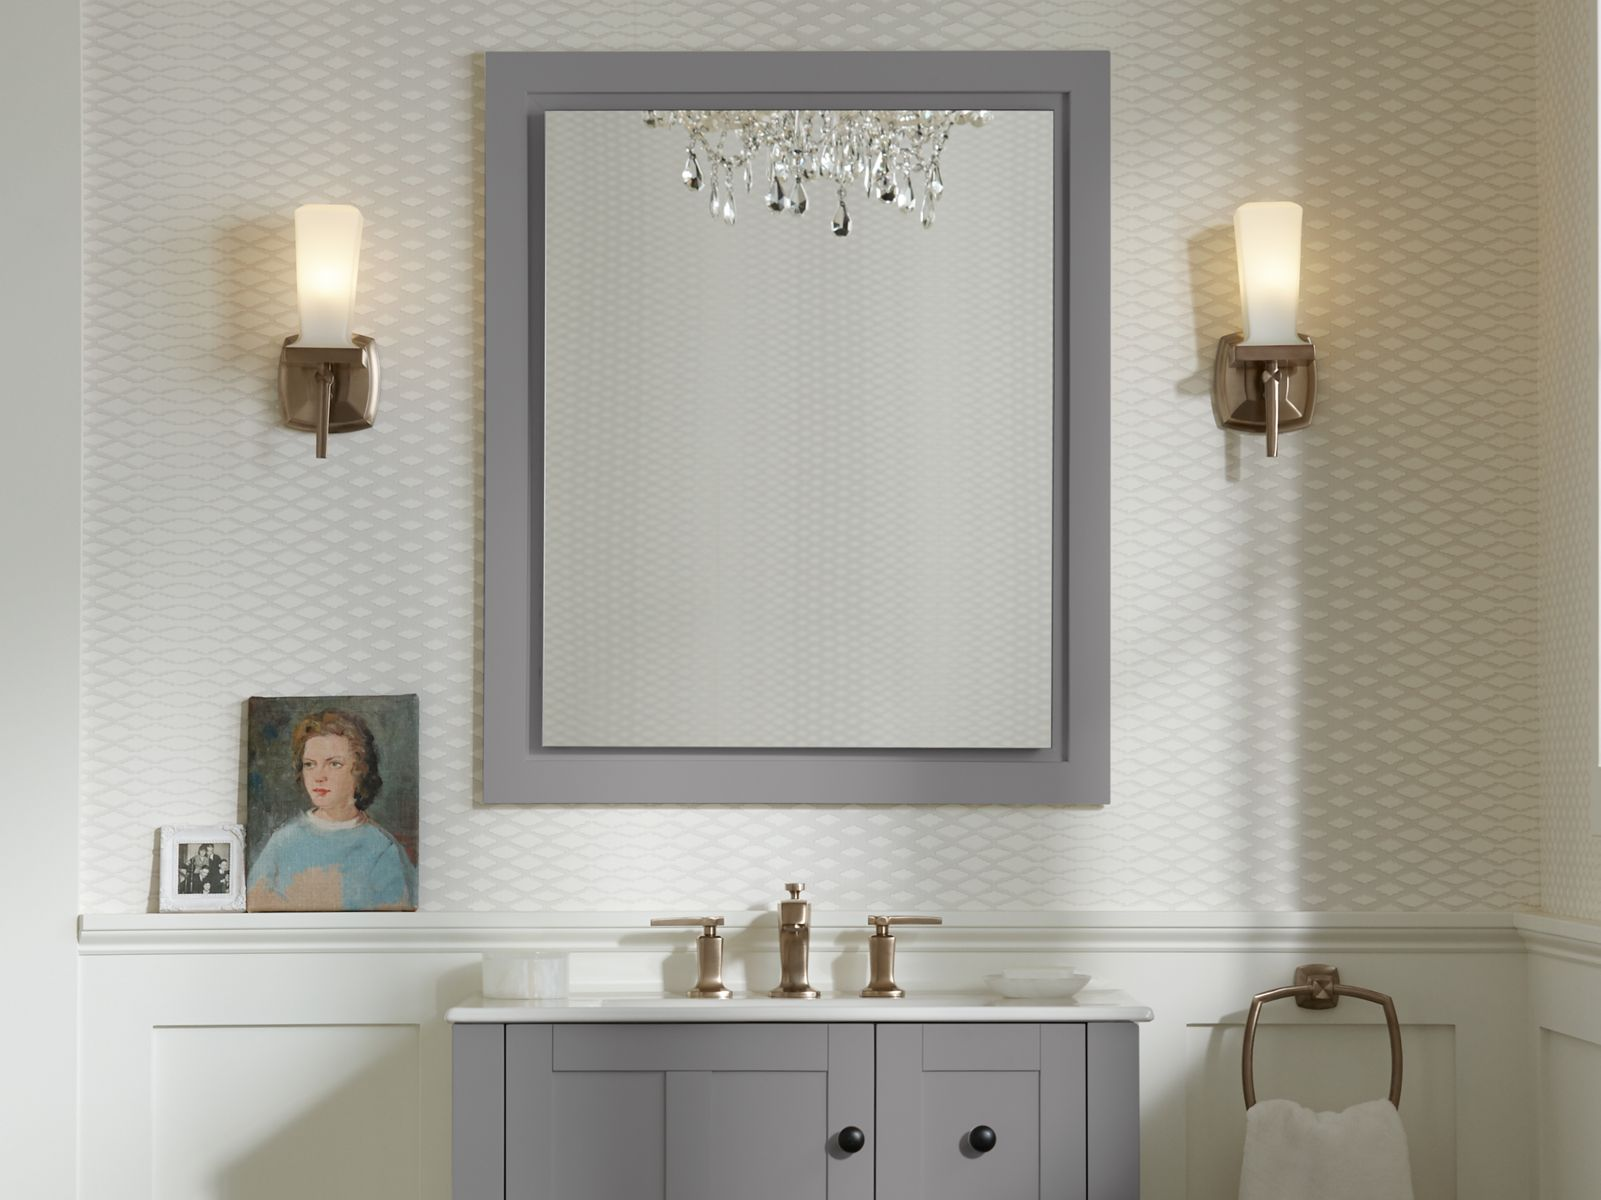 lighting - Bathroom Accessories Kohler